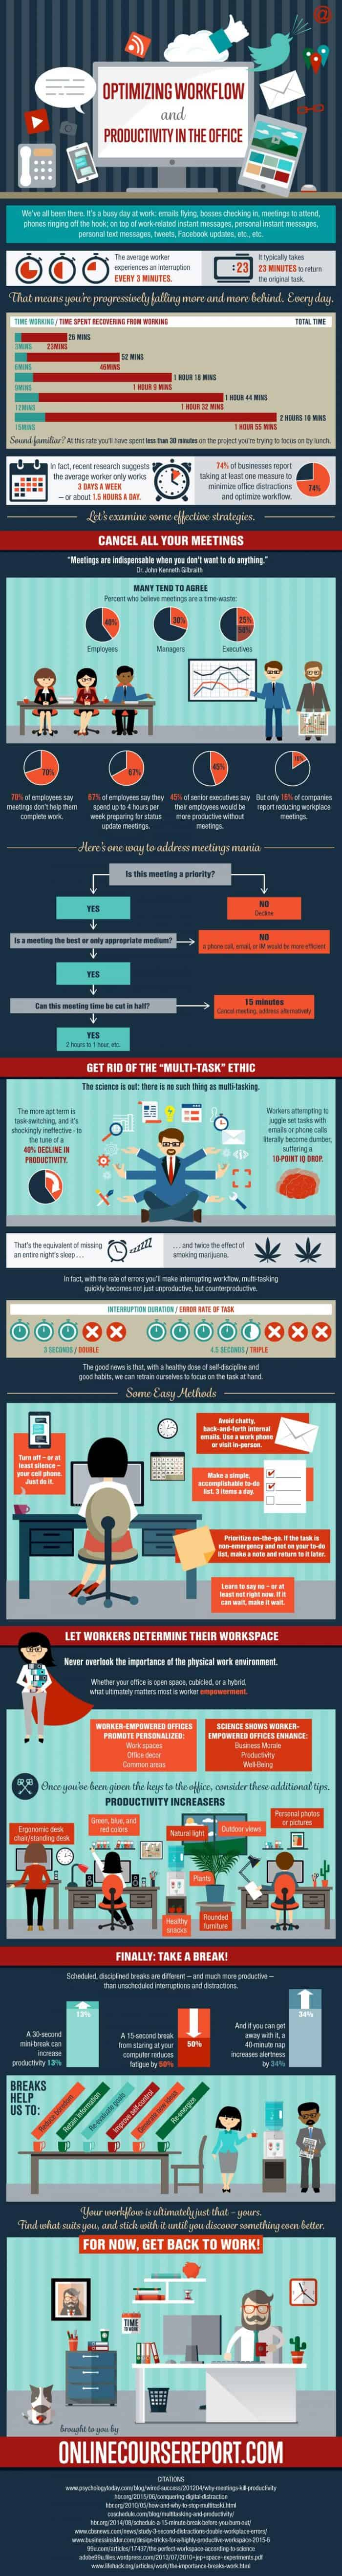 Optimizing Workflow And Productivity In The Office Infographic